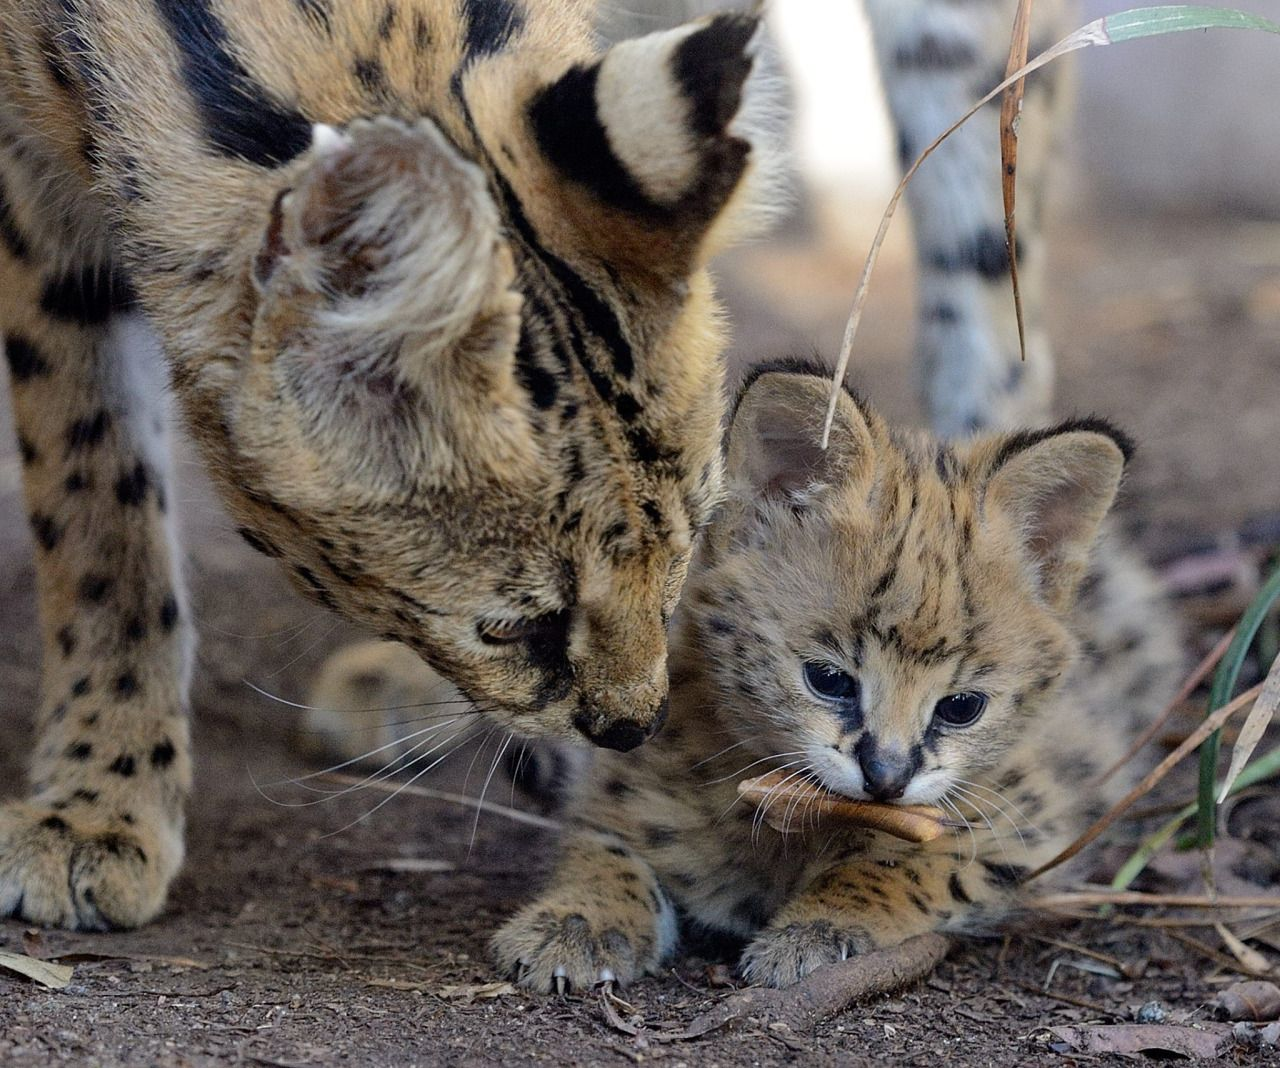 This Caturday is dedicated to our little serval man. Pics by Mike Wilson